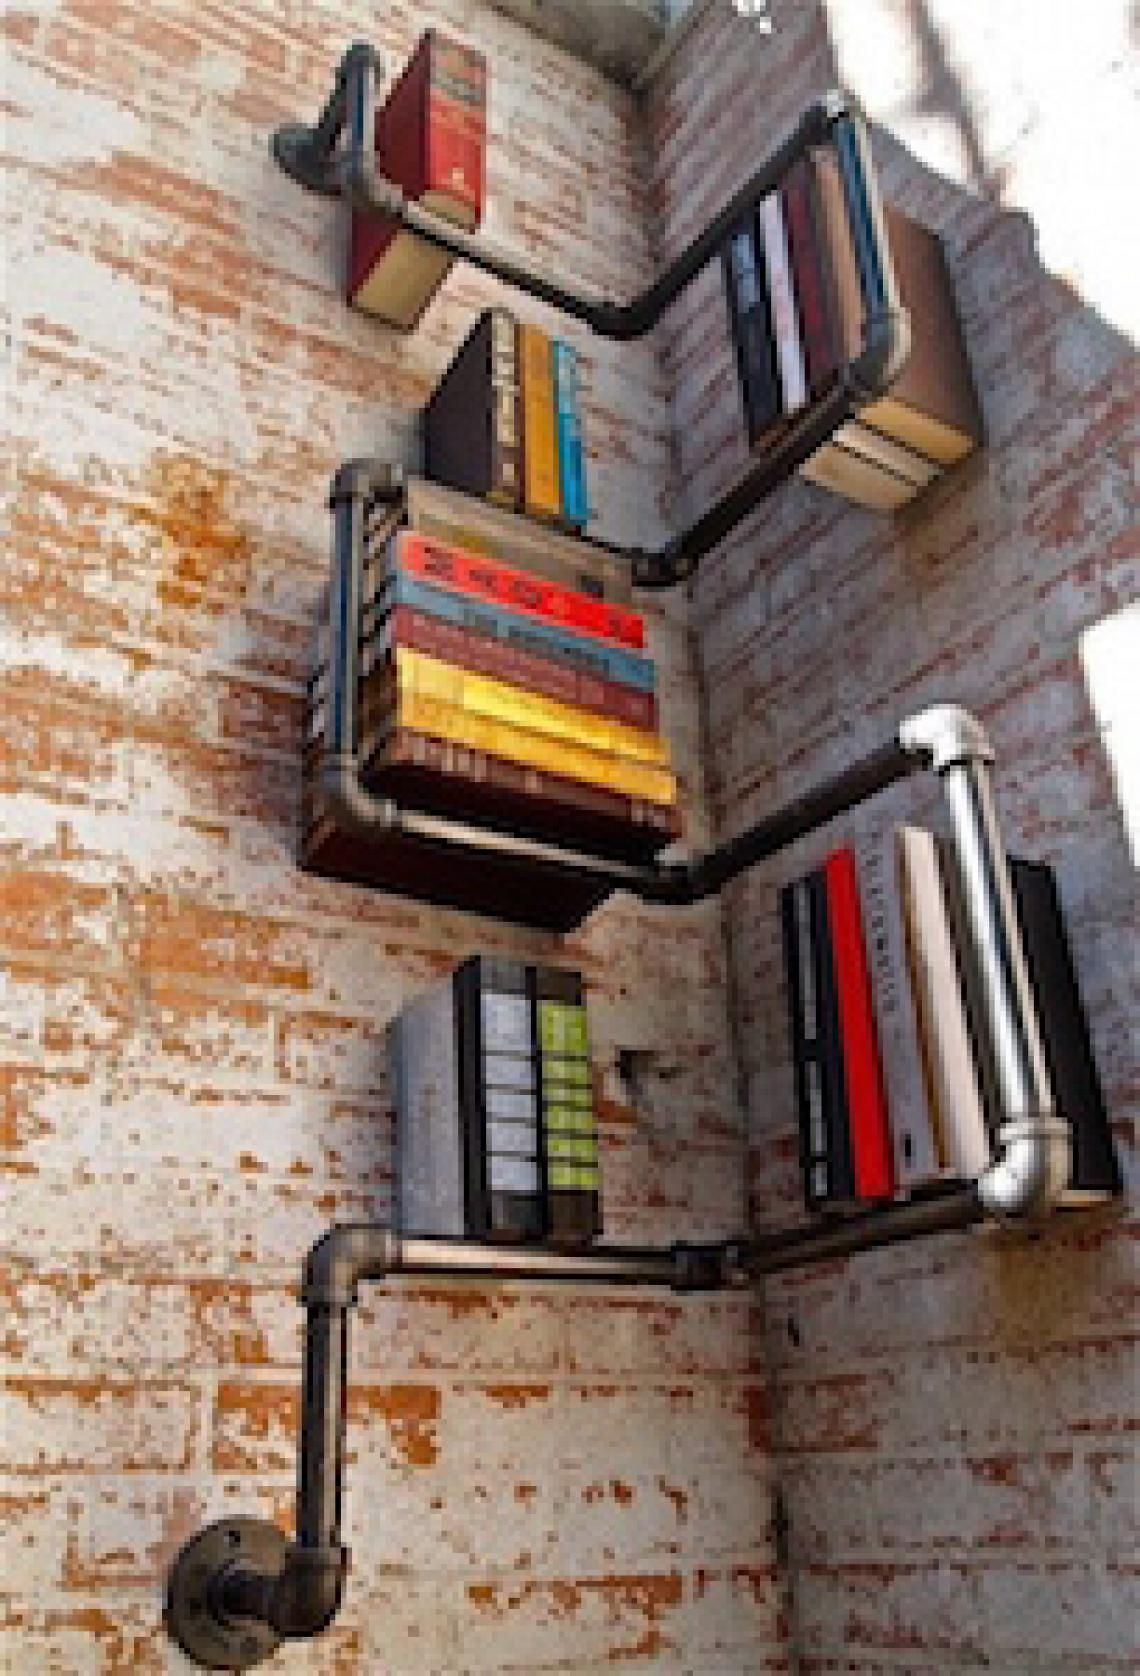 Who knew plumbing could be so chic pipe projects pinterest